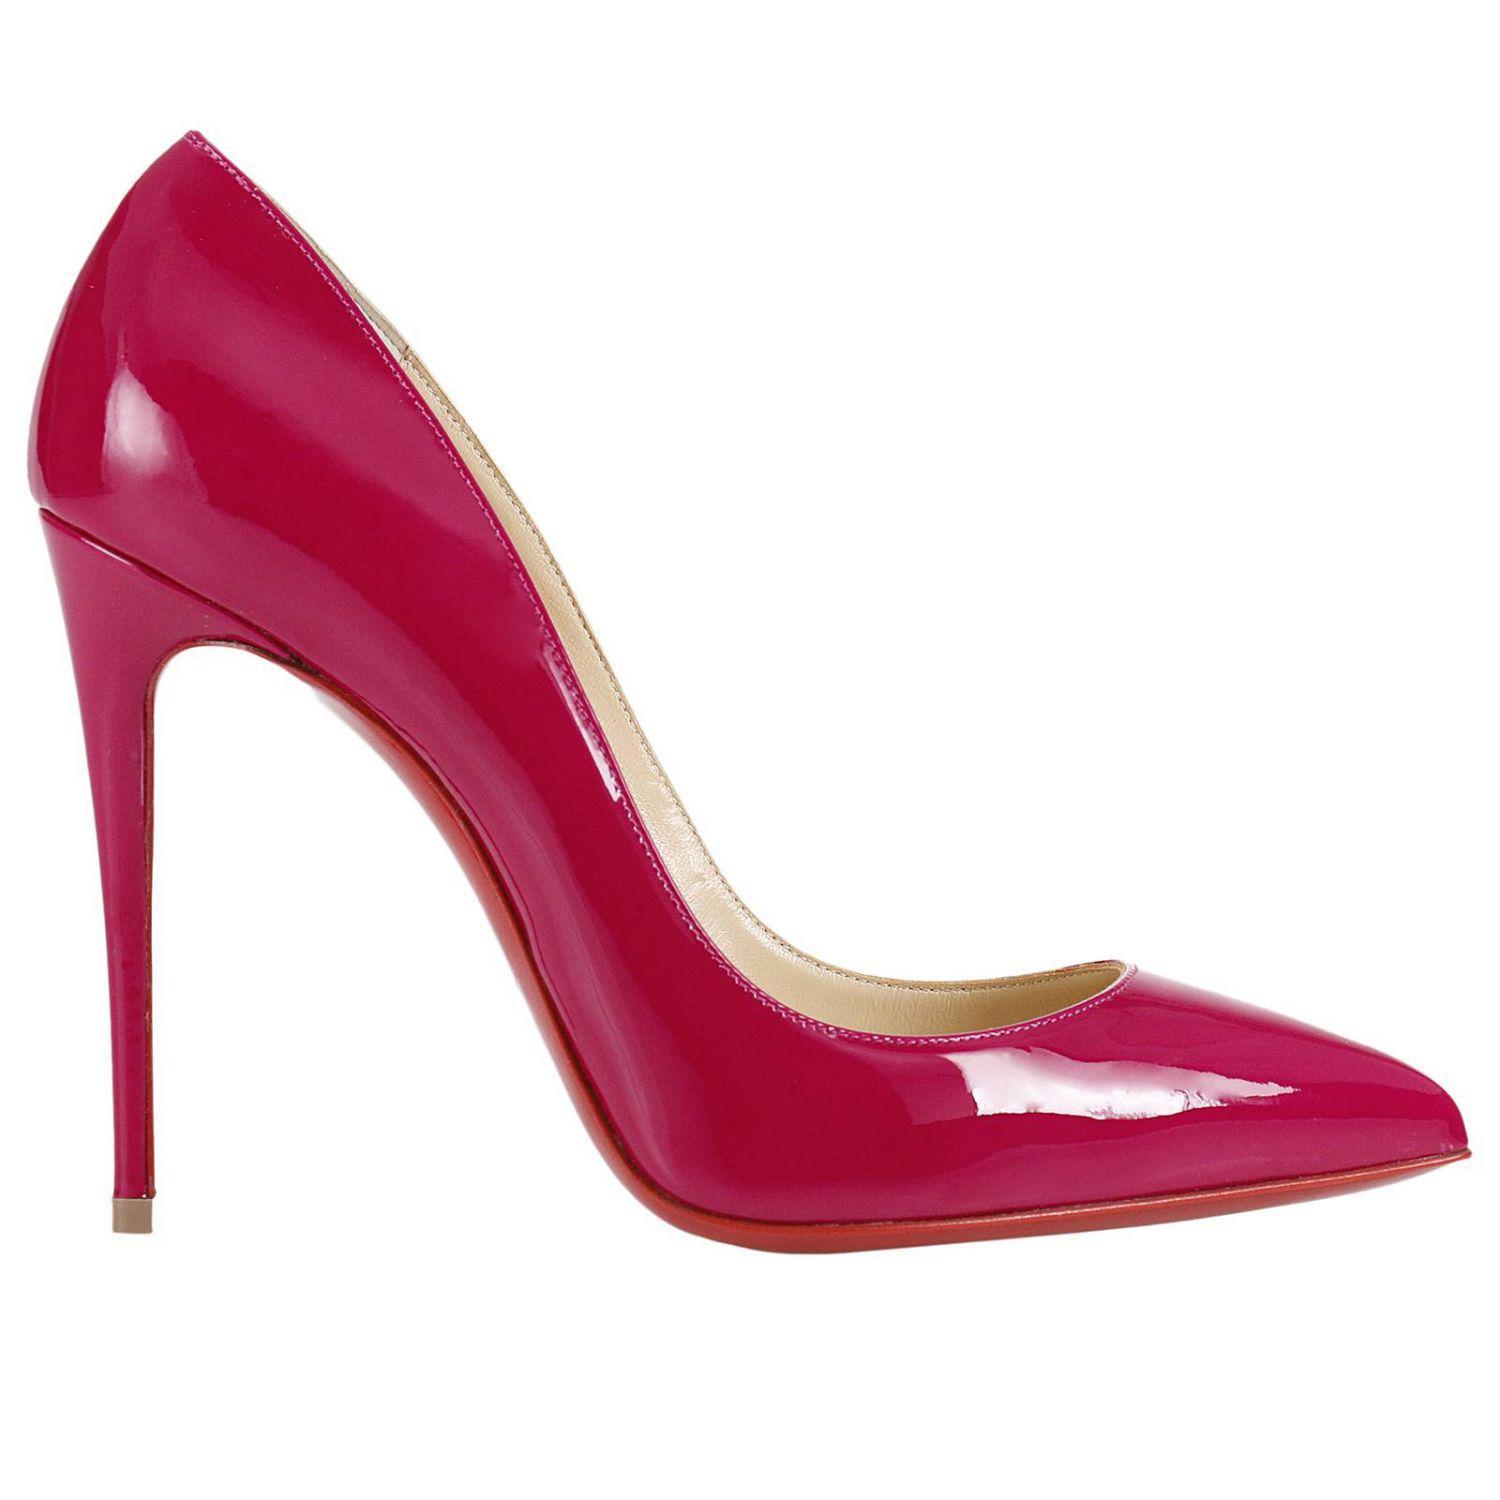 44a91303e65 Christian Louboutin Pumps Shoes Women - Lyst